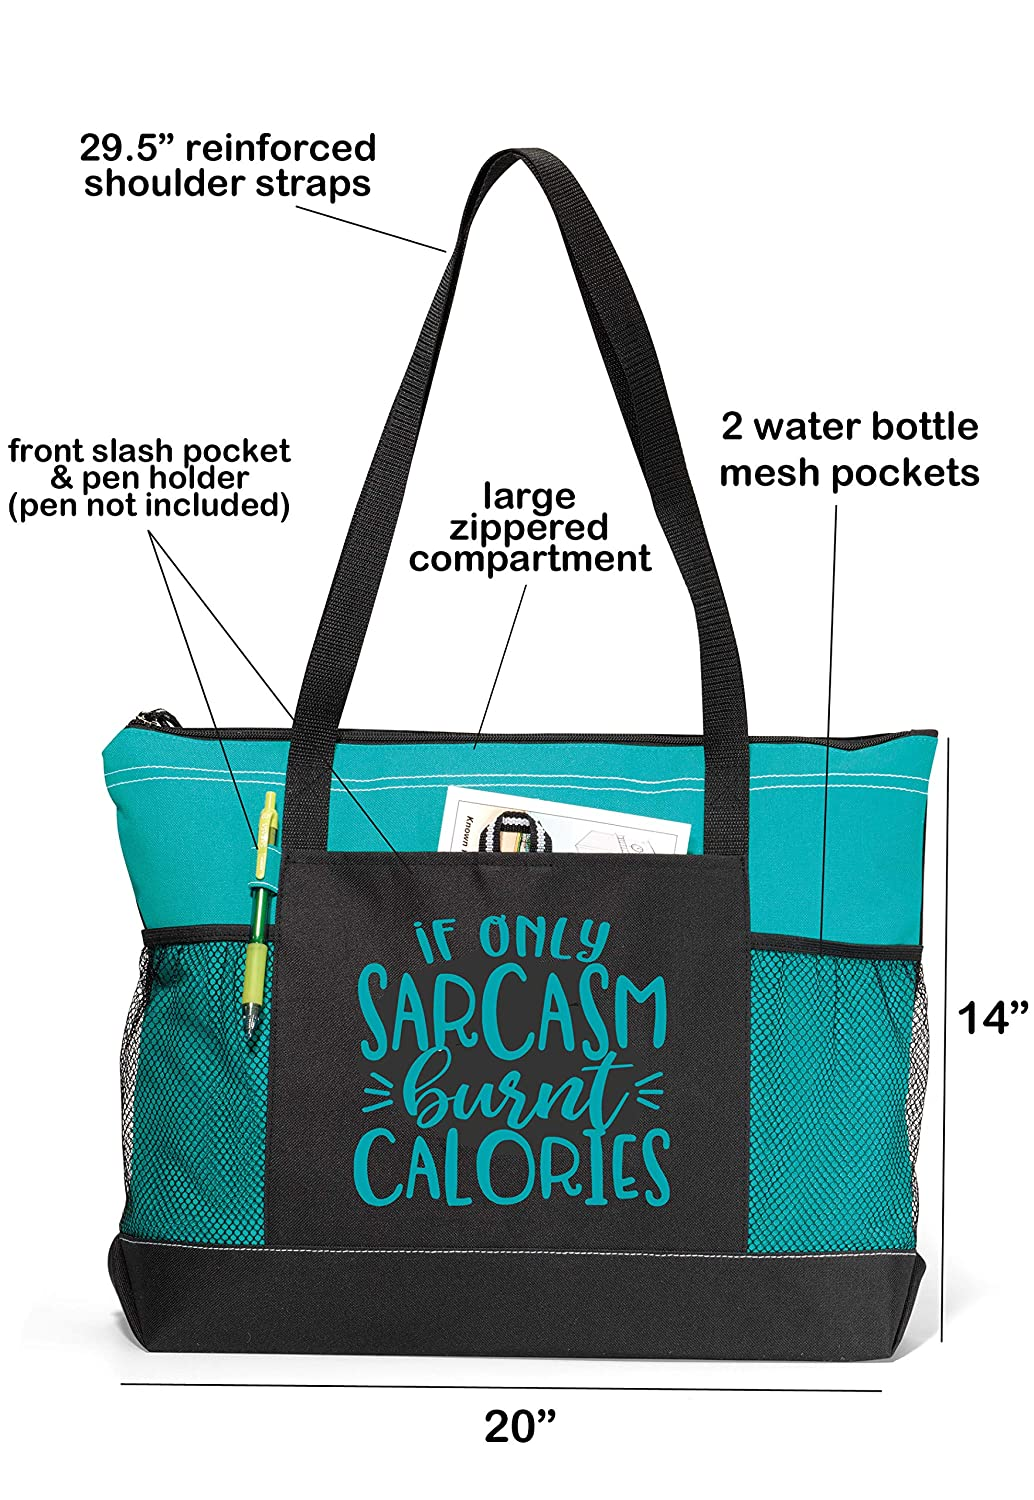 If Only Sarcasm Burnt Calories Pink Workout Tote Funny Gym Fitness Sayings Gym Tote Bag, If Only Sarcasm Burnt Calories Pink Fitness Tote Bag for Women Gym Tote Bag for Women